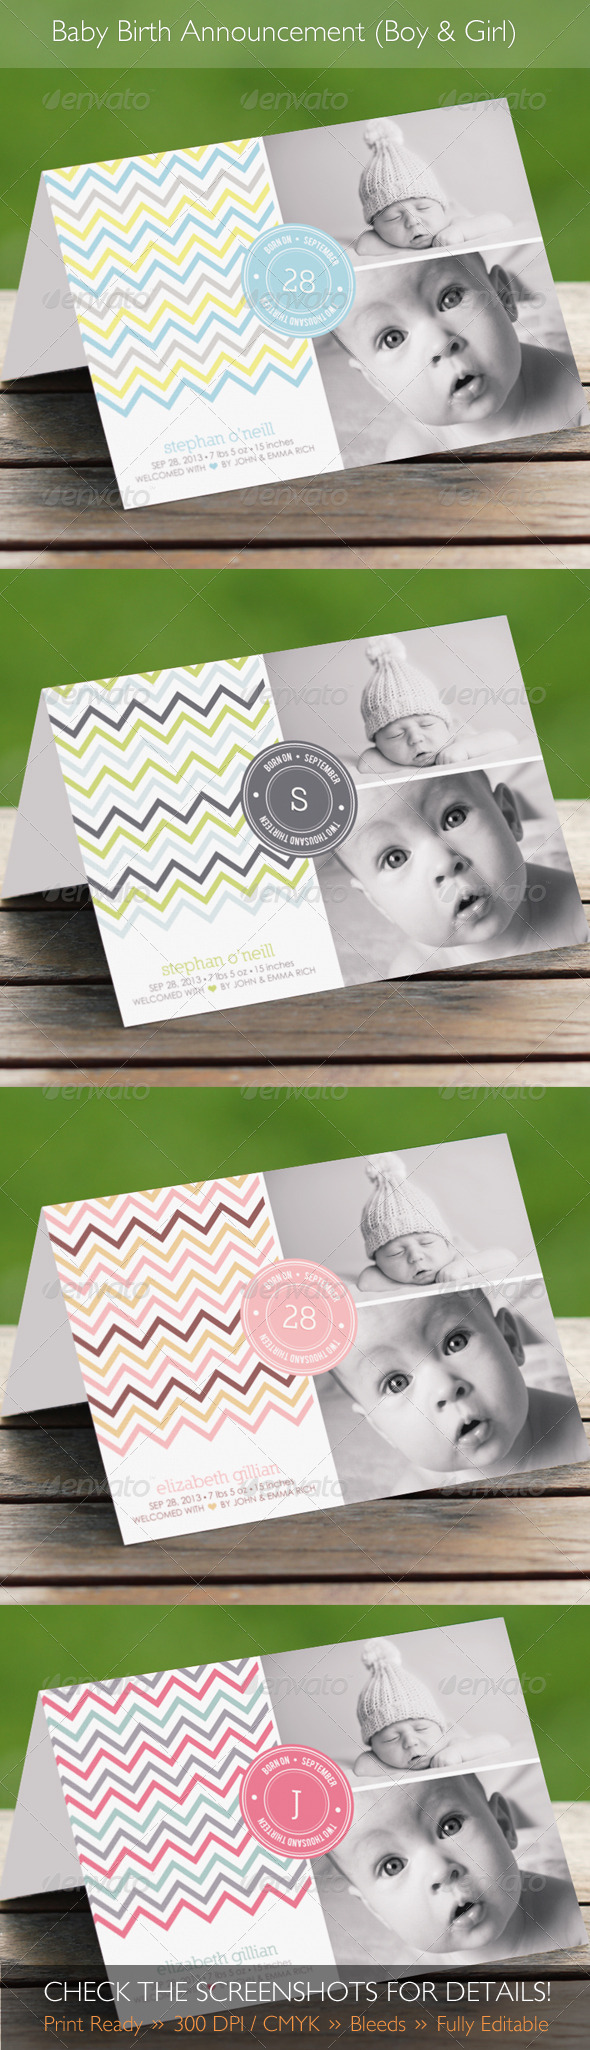 Baby Birth Announcement Boy & Girl 2 - Family Cards & Invites